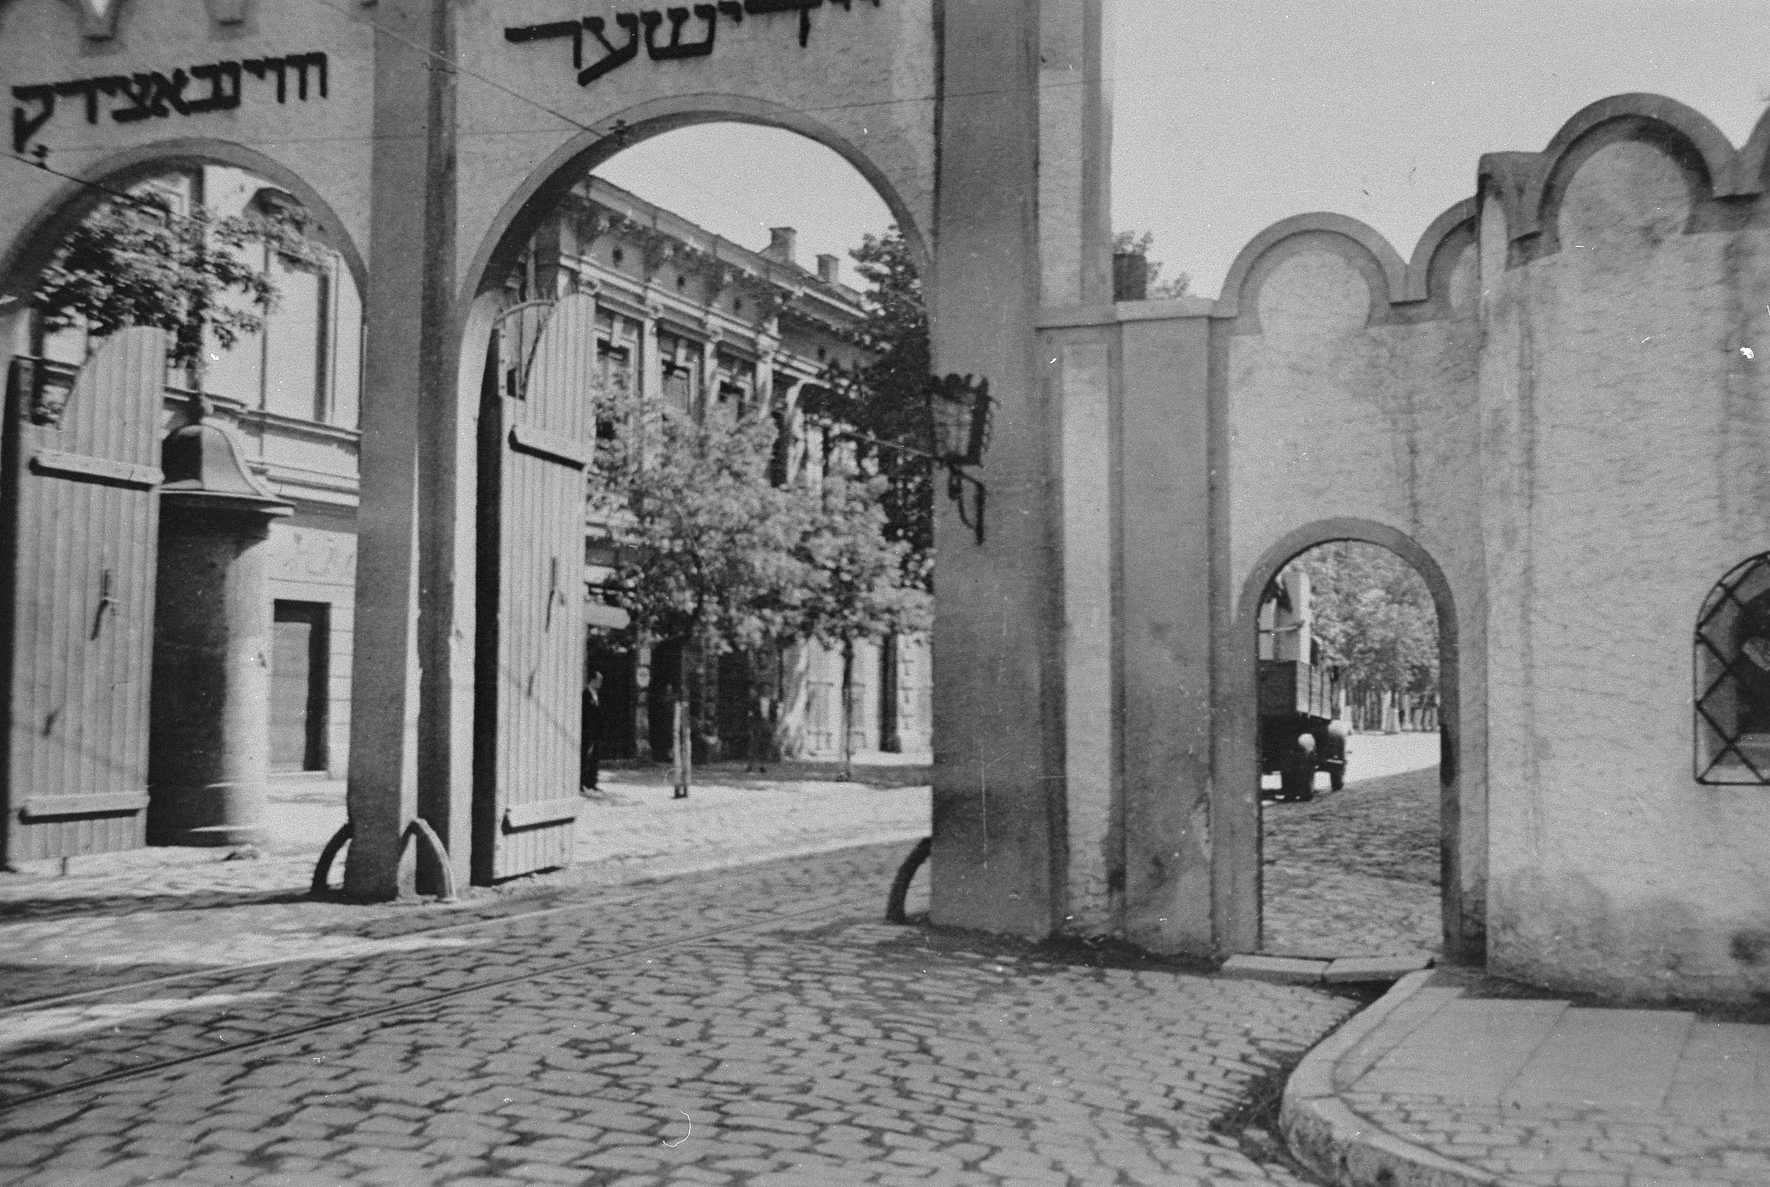 Entrance to the Krakow Ghetto